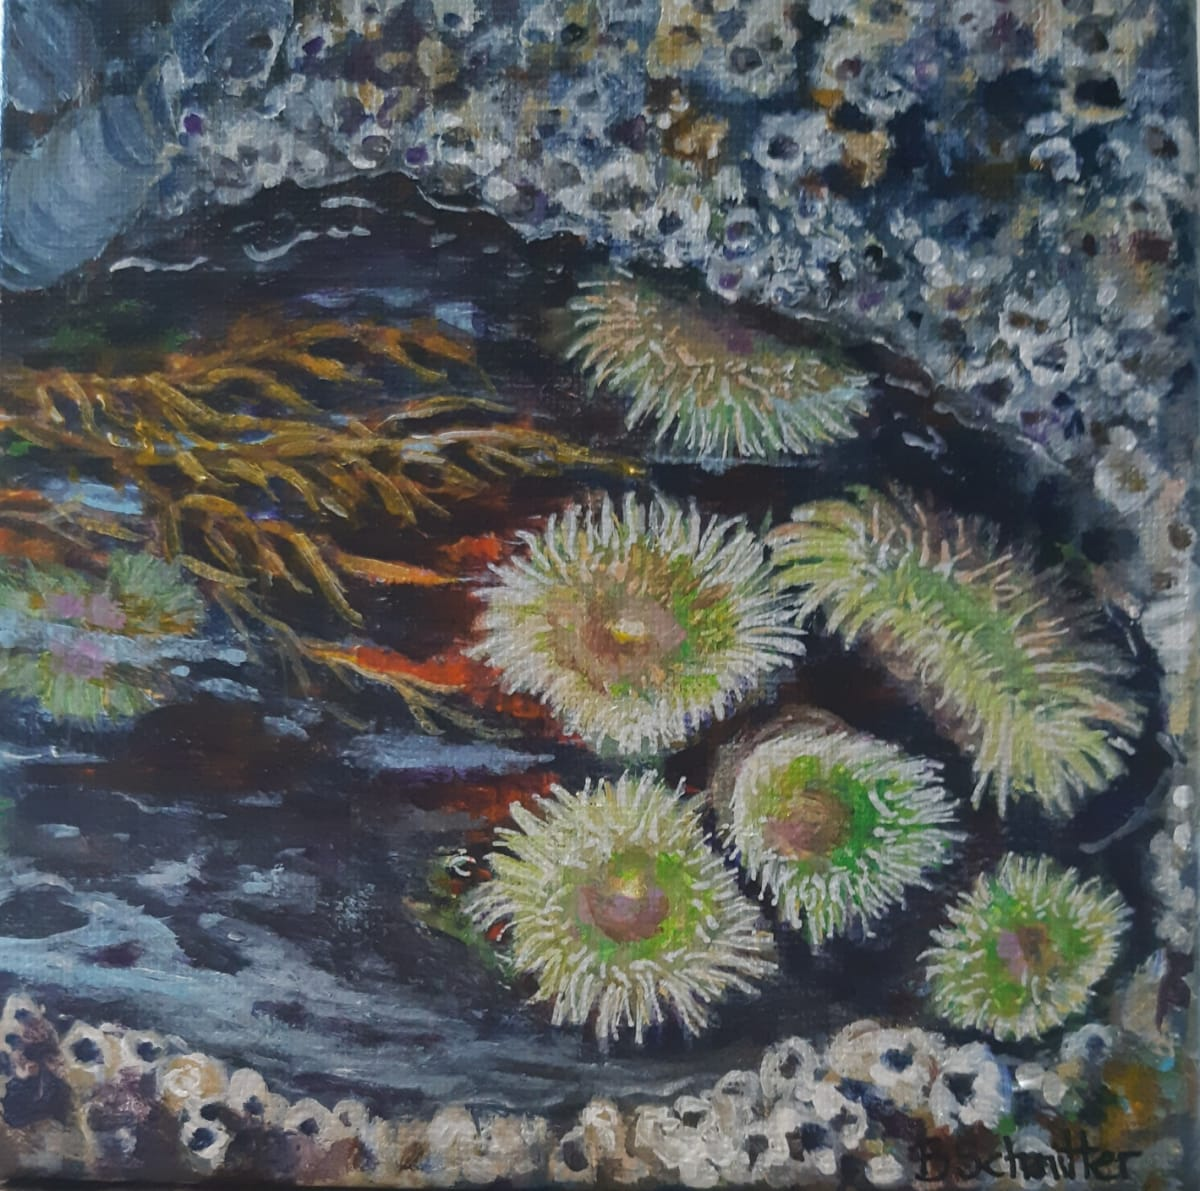 Tidal Pool by Bonnie Schnitter